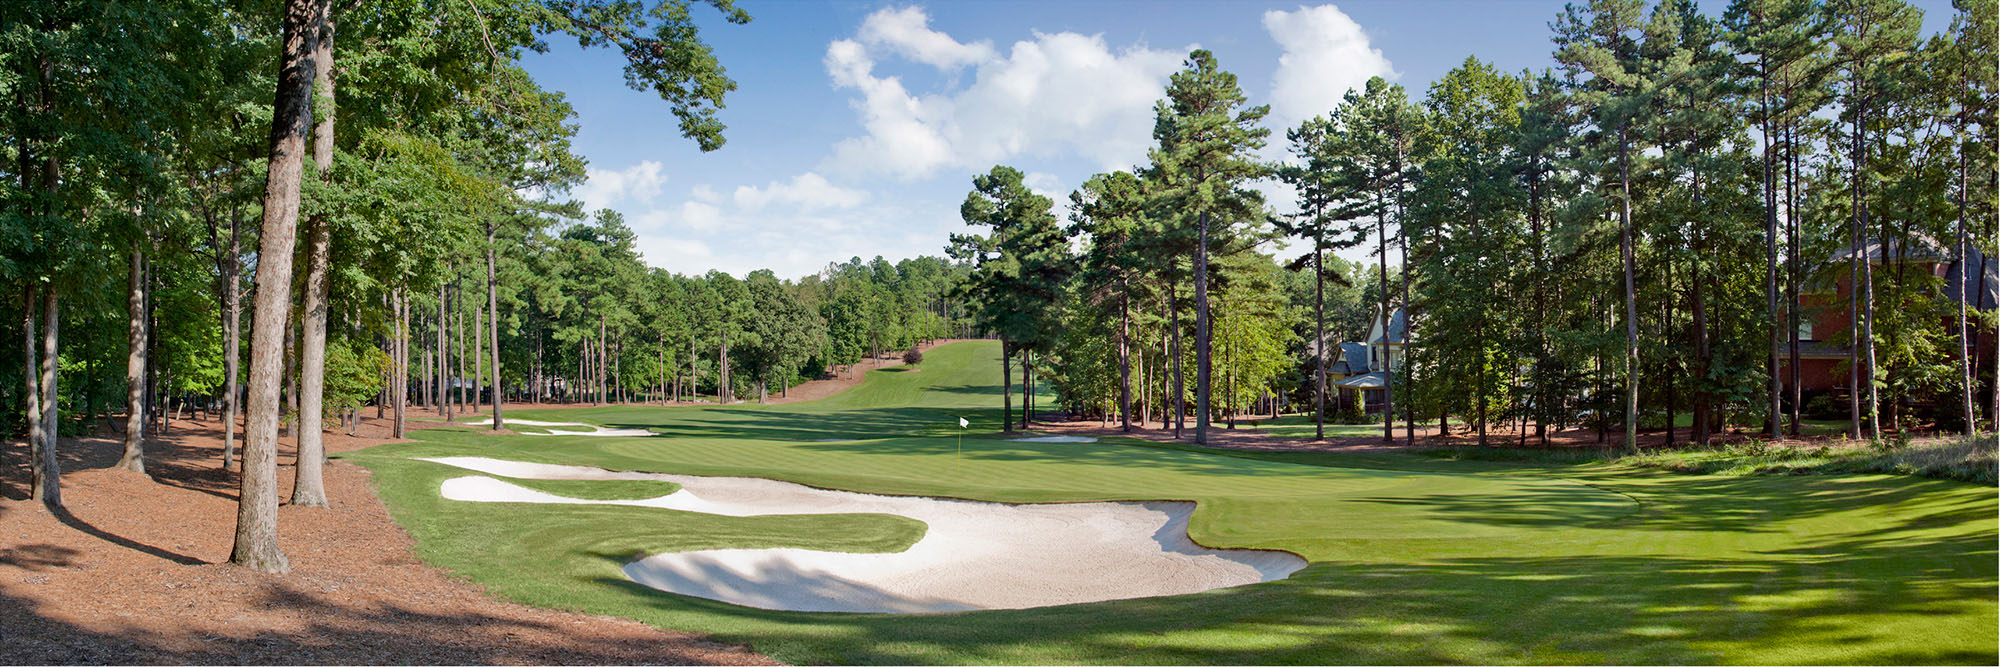 Golf Course Image - Trump National Charlotte No. 2